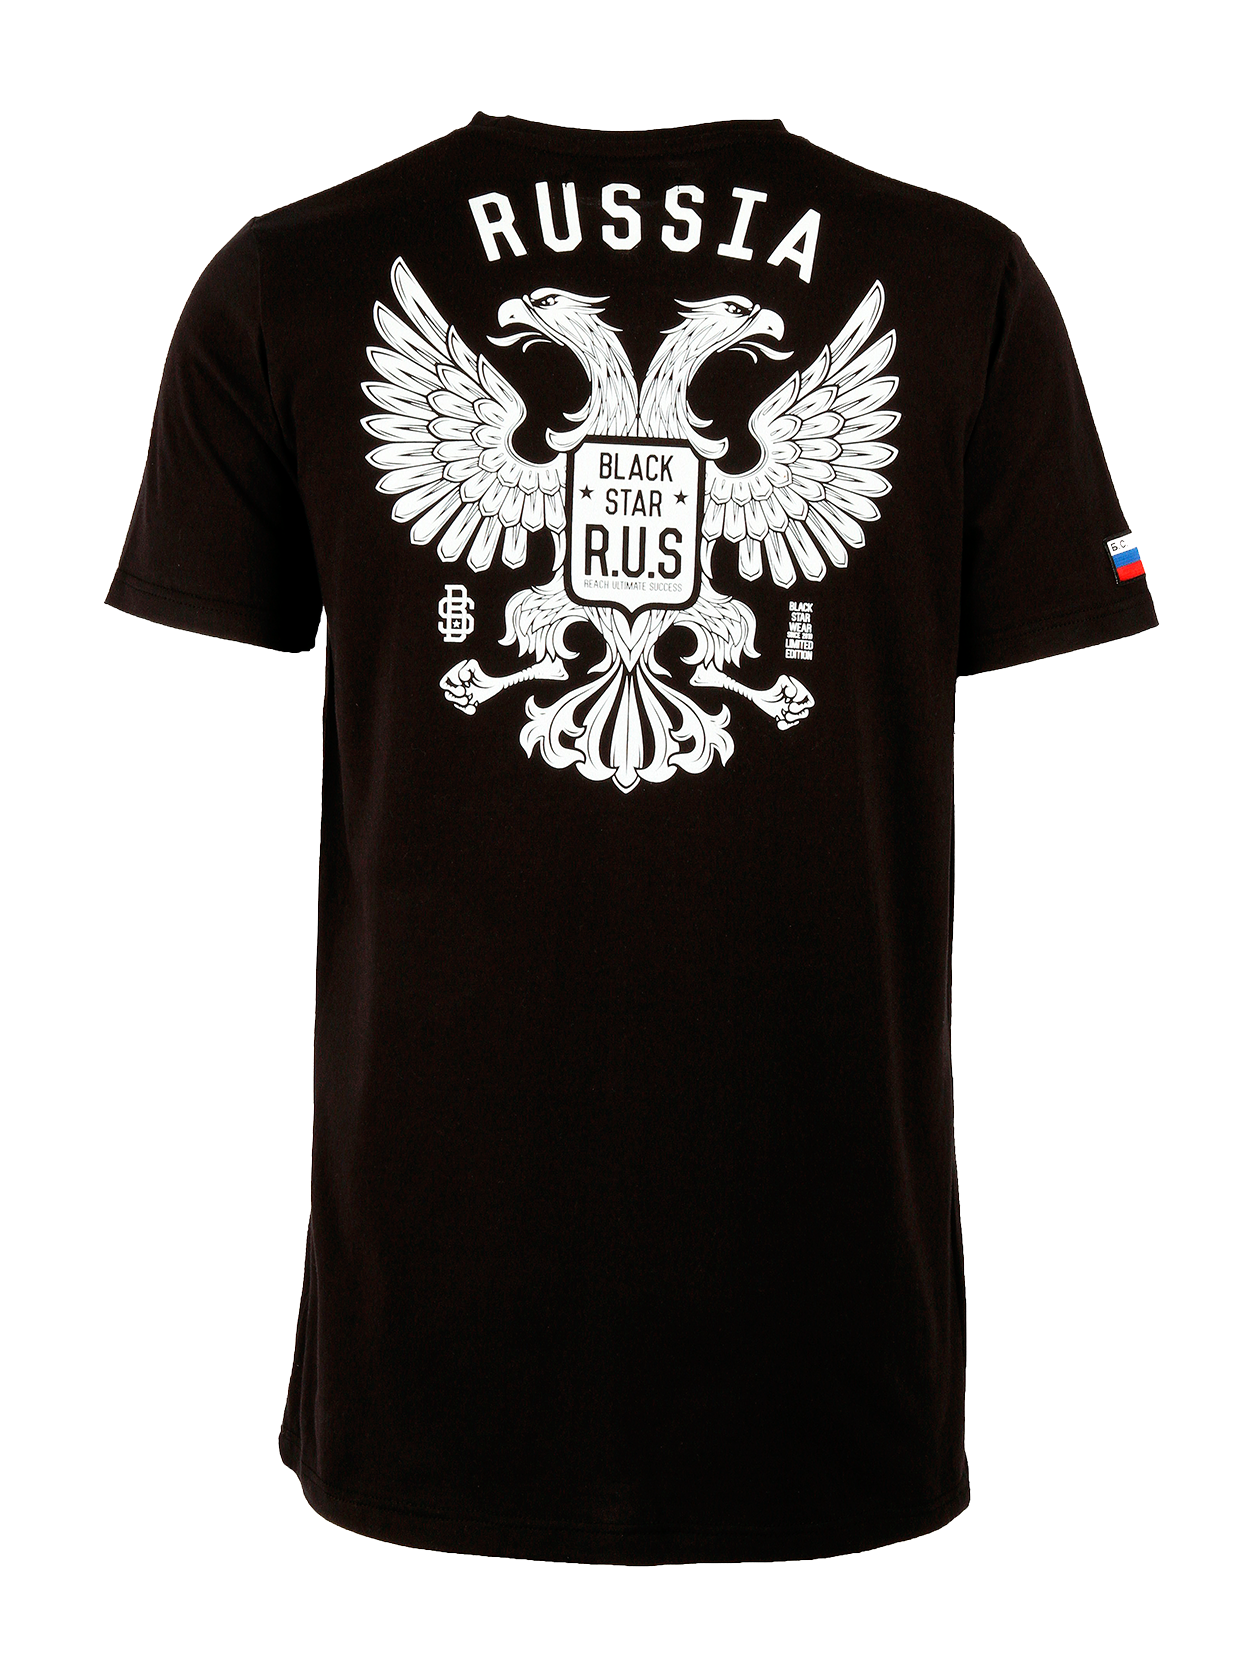 Mens t-shirt GERBMens t-shirt GERB by Black Star Wear. Crew neck, straight cut. Big white print of two headed eagle with brand identity and small Black Star R.U.S. (Reach Ultimate Success) on the front. Russian tricolor patch on the right sleeve. Avaliable in black, gray and white.<br><br>size: XXS<br>color: Black<br>gender: male